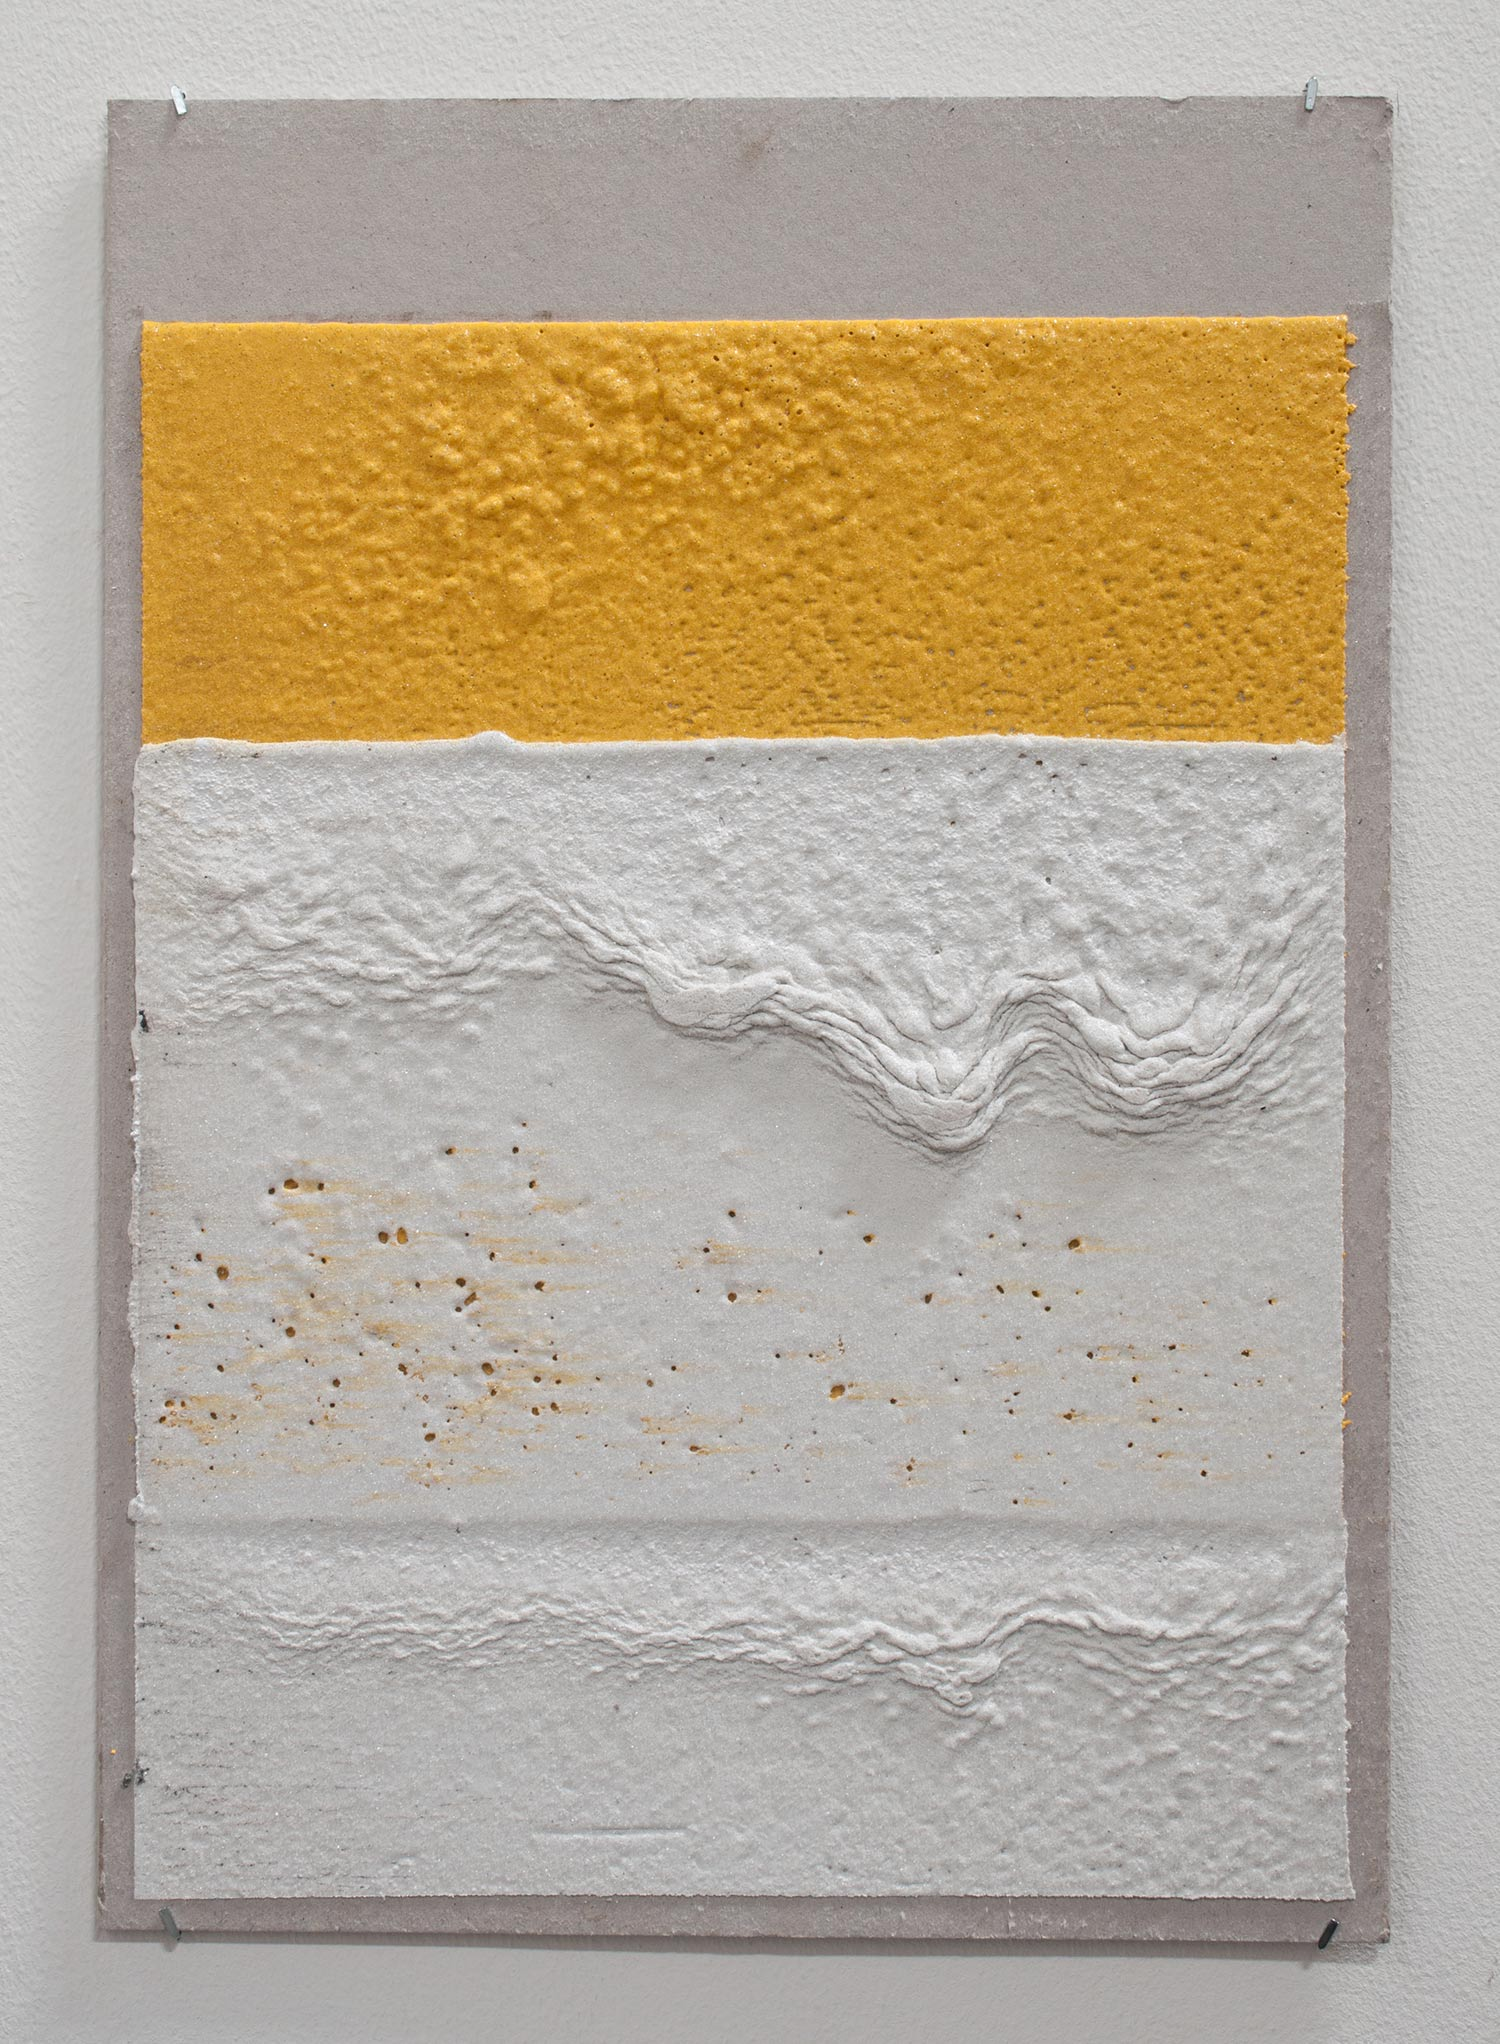 300mm (W), 2mm (T), Yellow, White, Random mark, hand marking, Al Barsha South, Unnamed street,  2017  Thermoplastic paint and reflective glass particles on grey board  35 x 50 cm